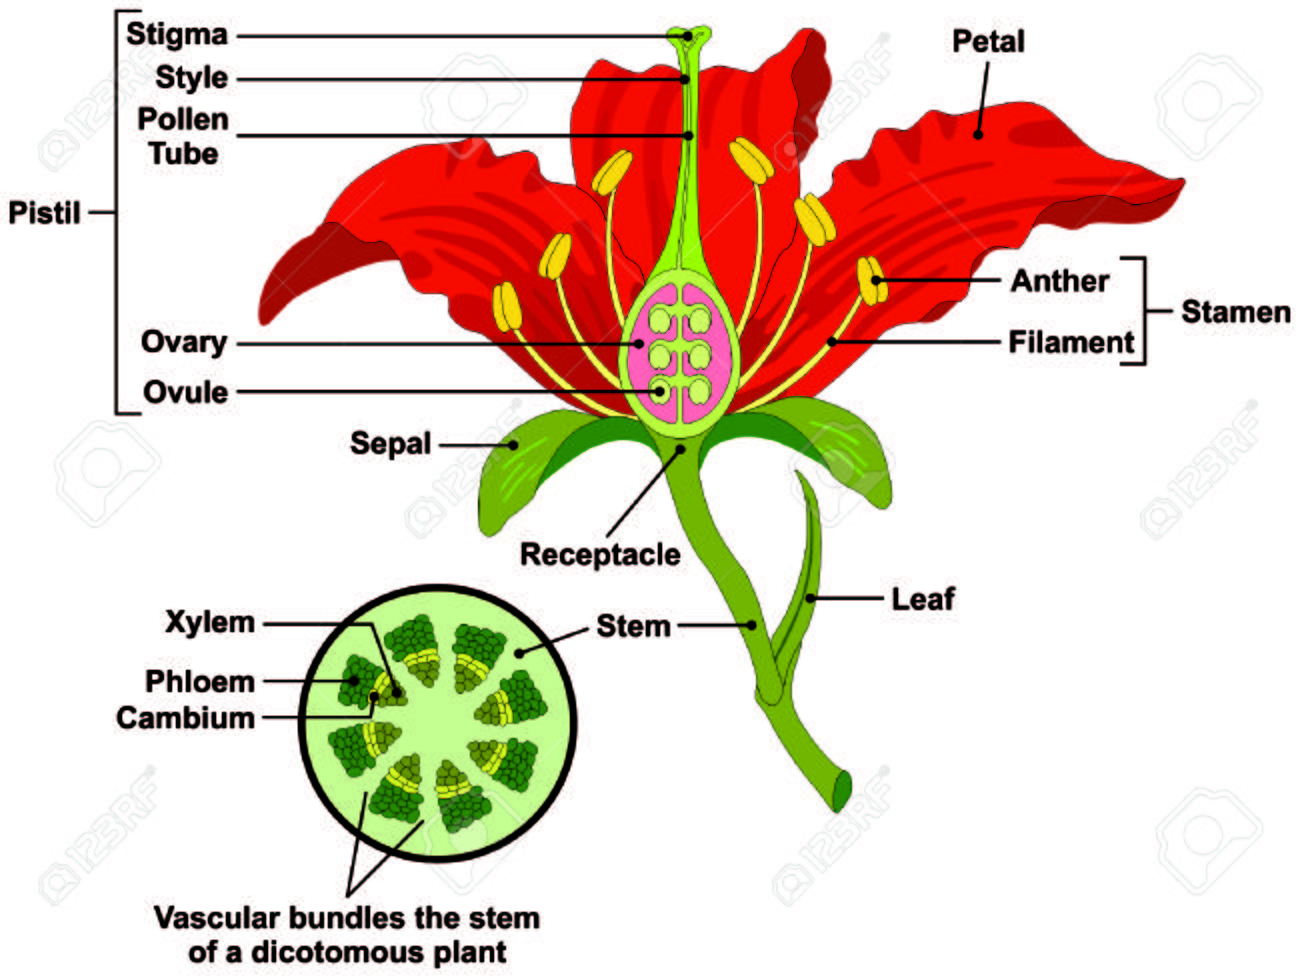 Diagram Of Parts Wiring Diagrams Remington 870 Flower With Stem Cross Section Anatomy Plant Rh 123rf Com